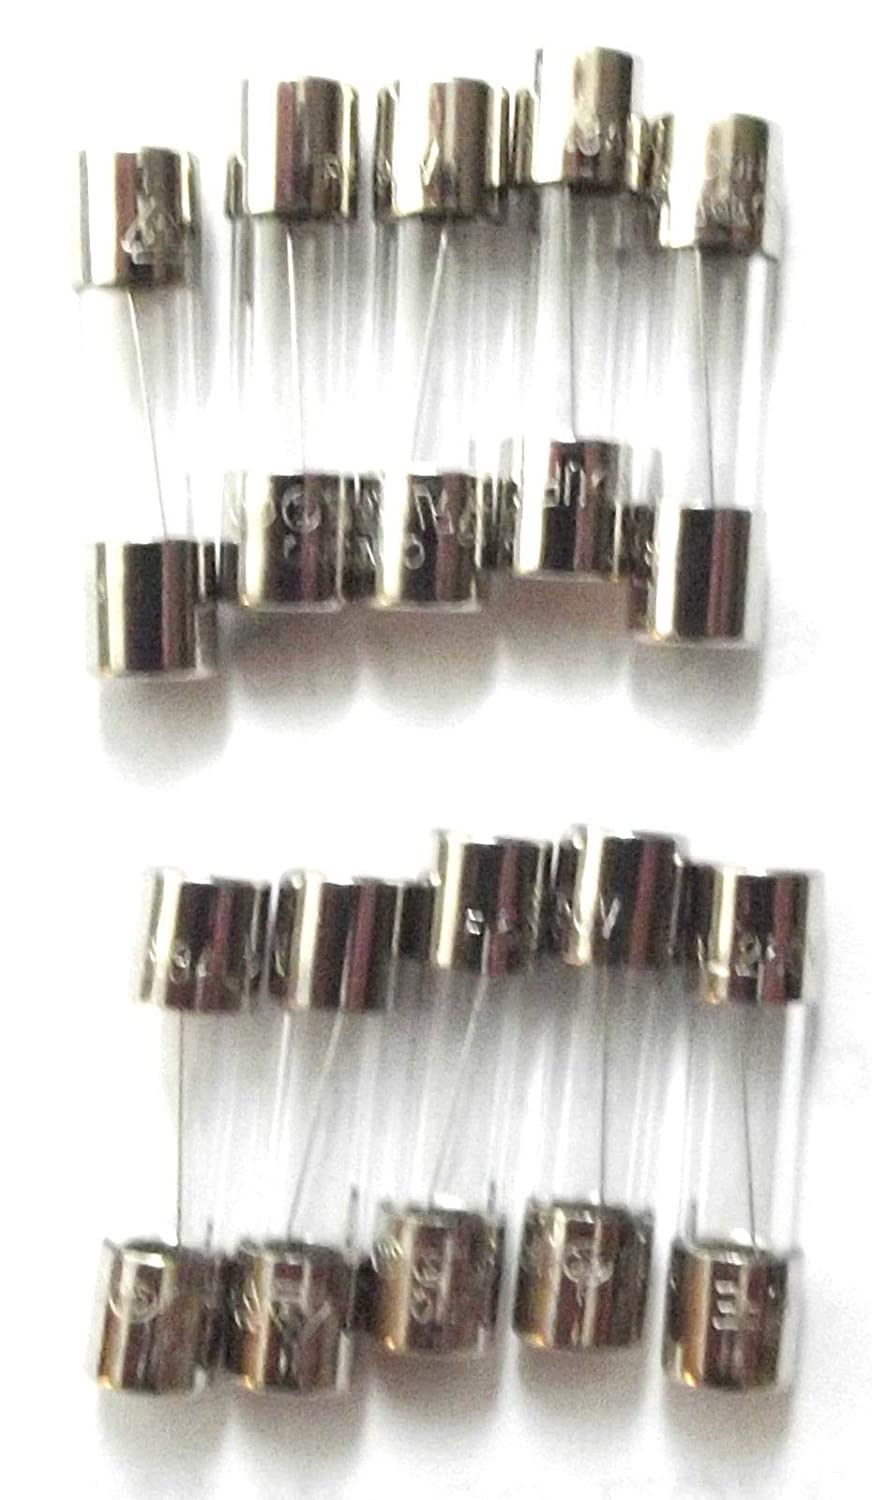 FUSE 6.3A 20mm  Quick Blow  Fast F6.3a L 250v  Glass  x10pcs